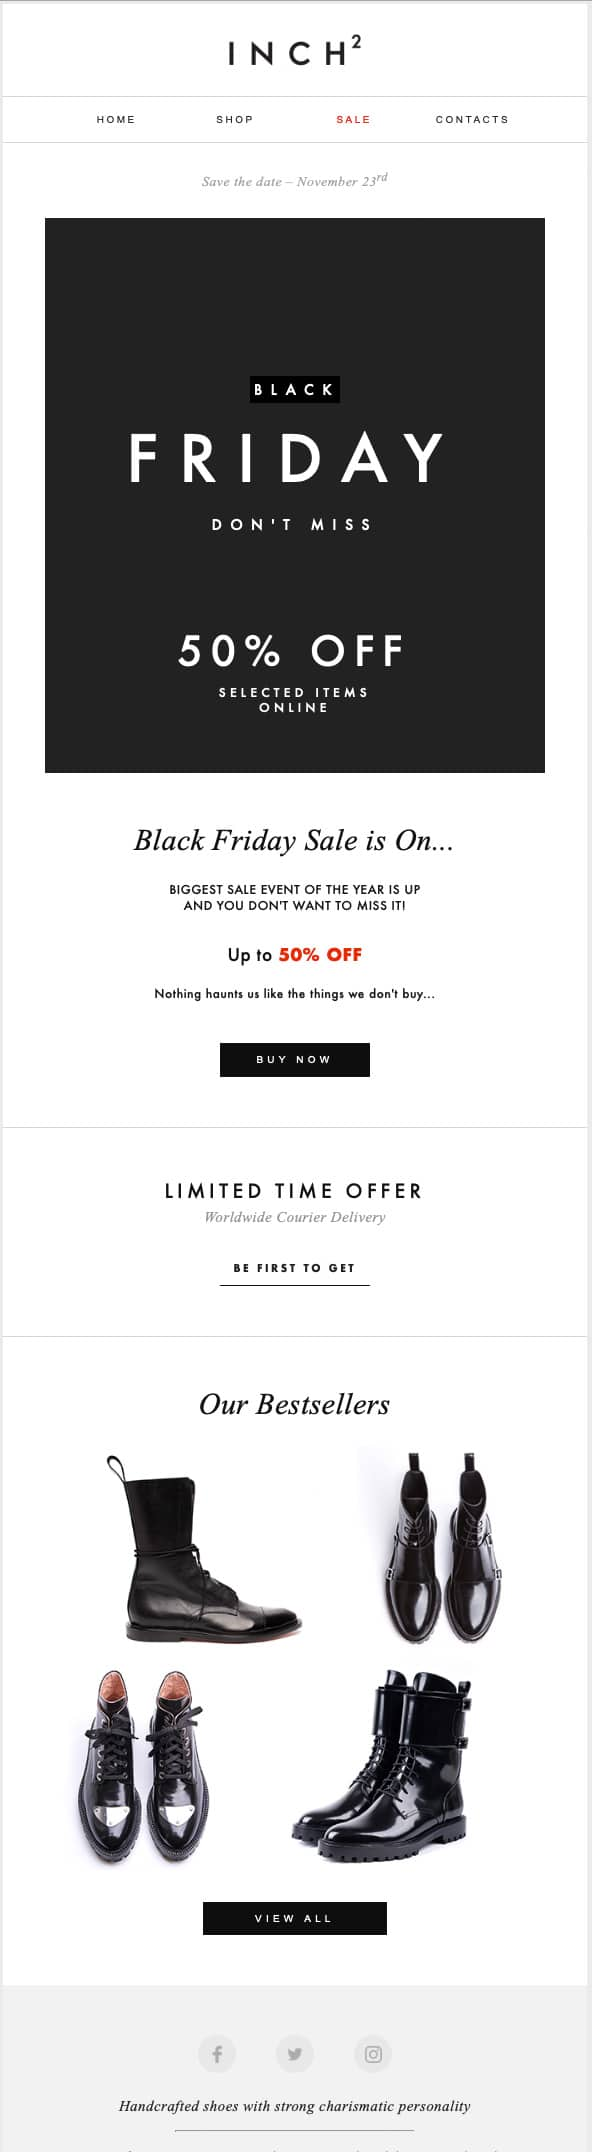 Awesome Black Friday Marketing Ideas To Skyrocket Online Sales